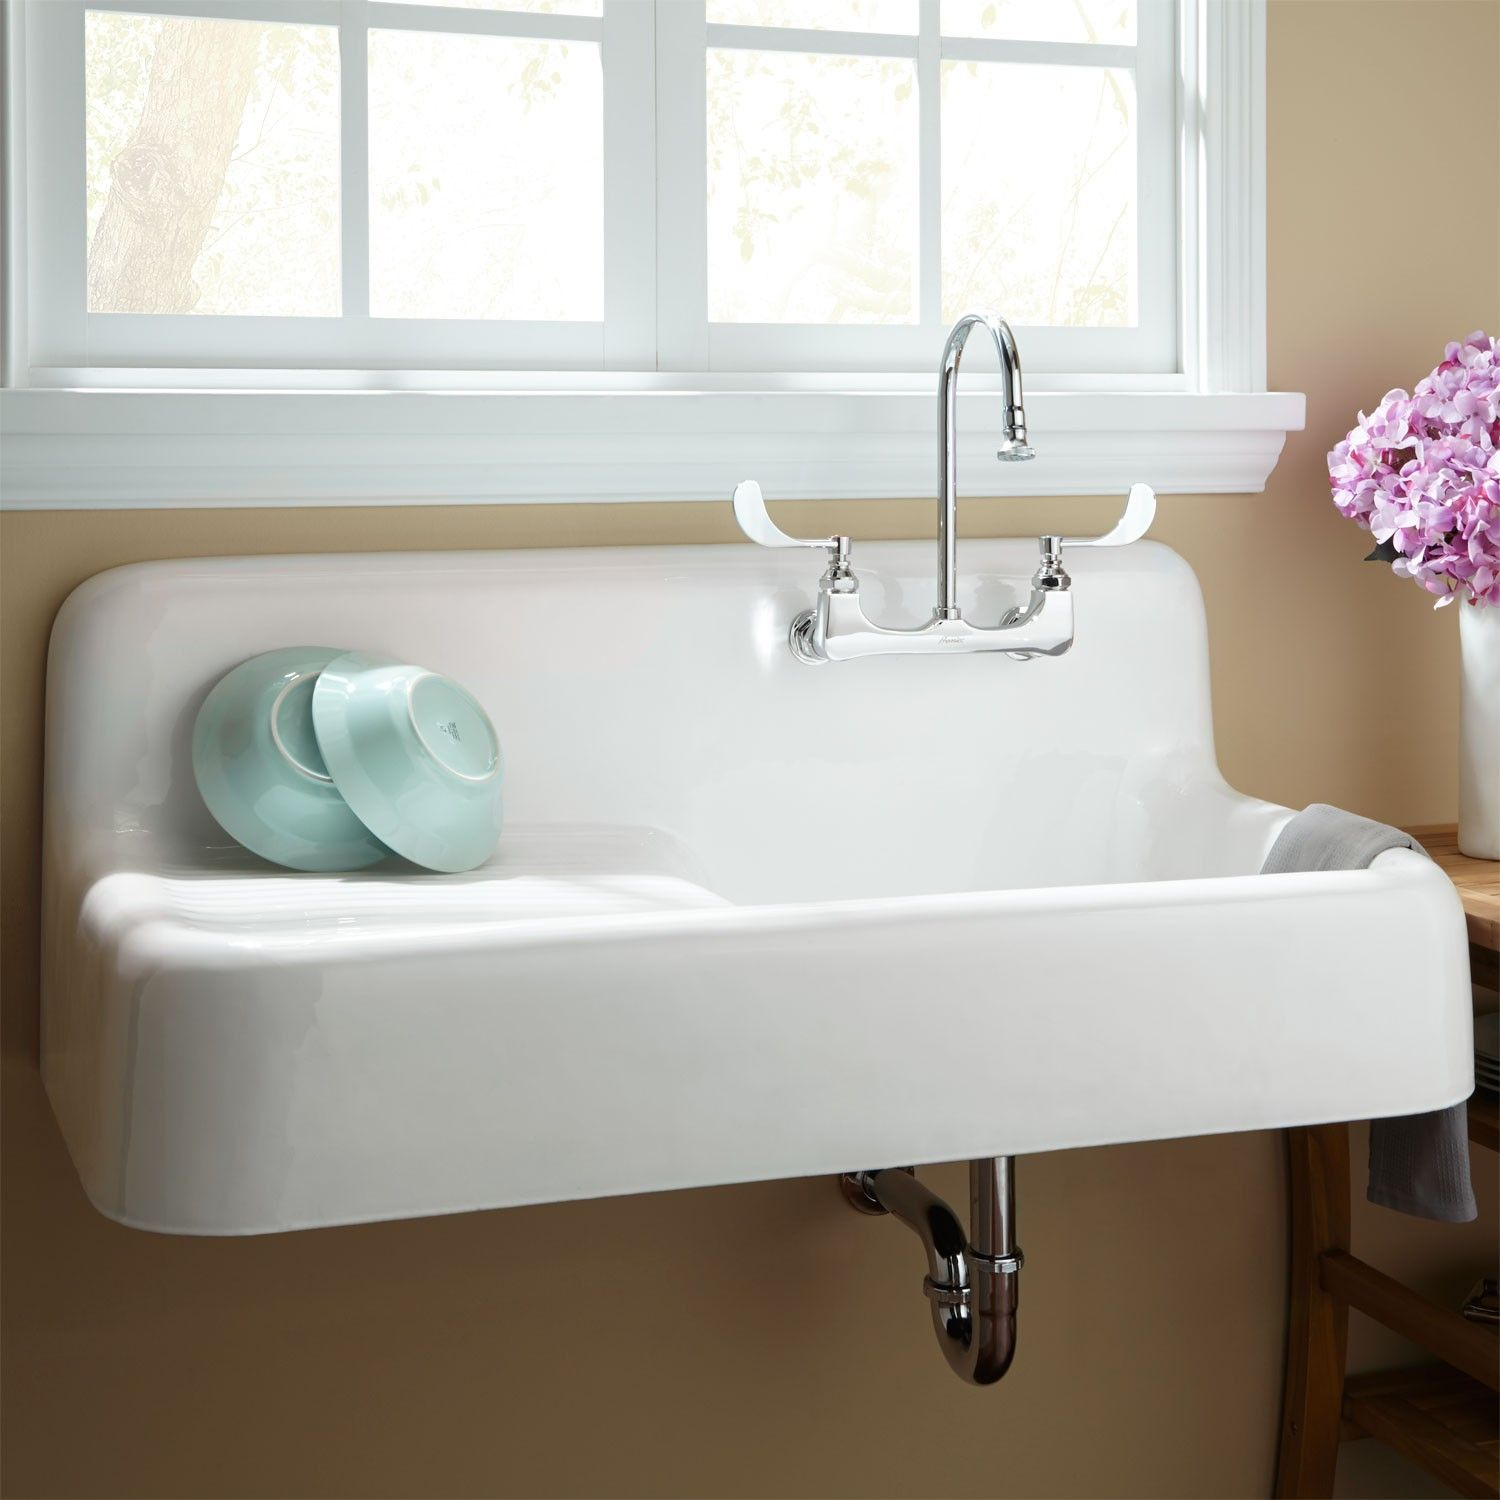 vintage kitchen sink A vintage cast iron kitchen sink with drainboard famous in the s and s How